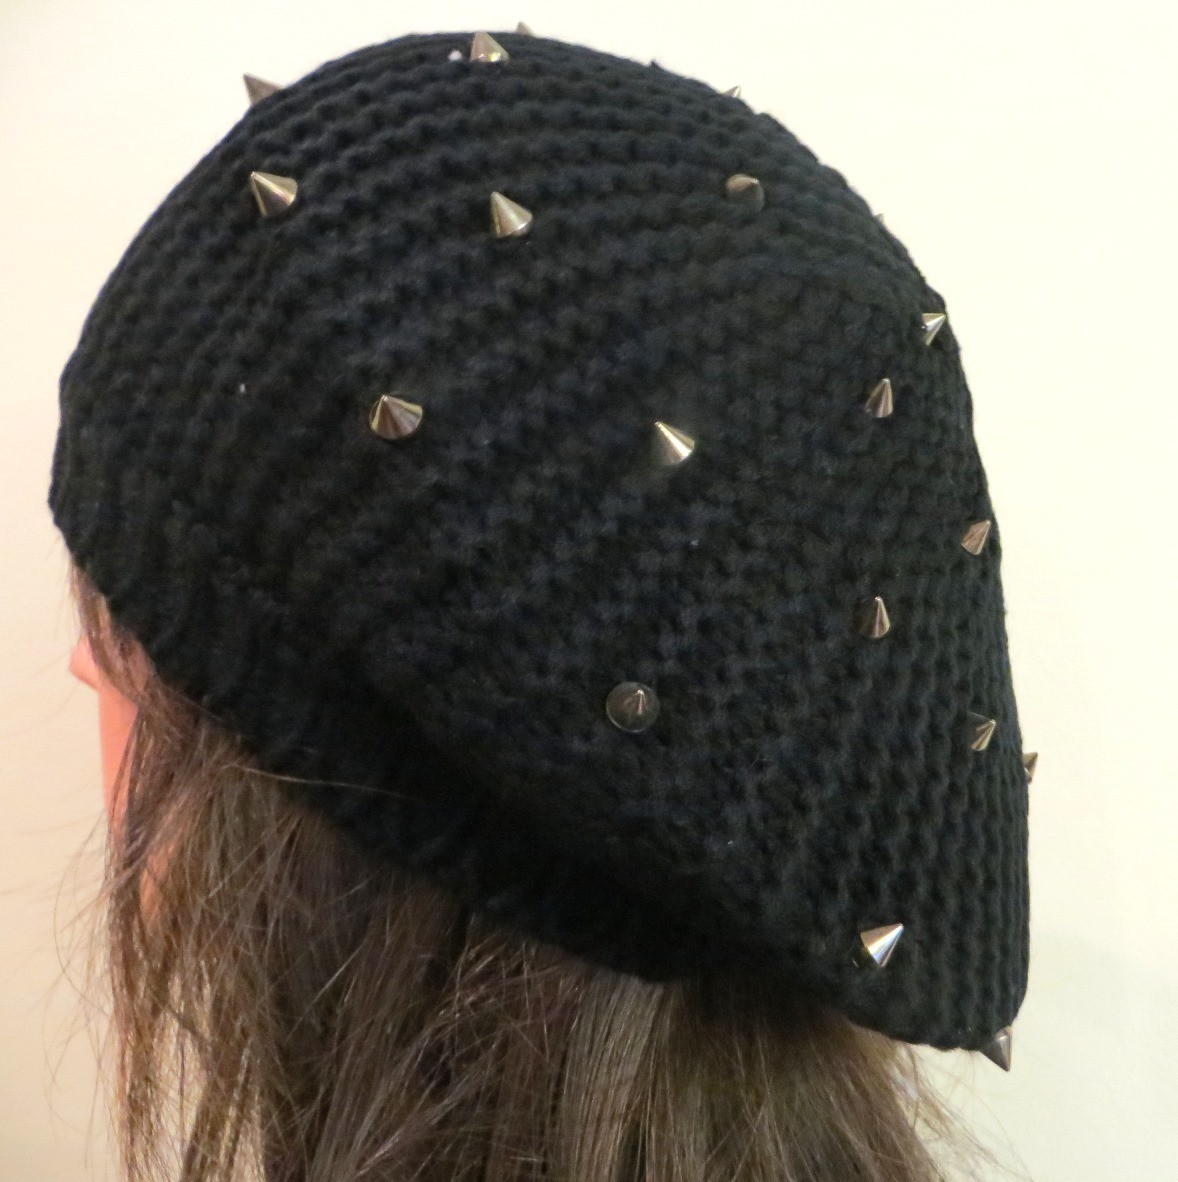 Black beret with spikes